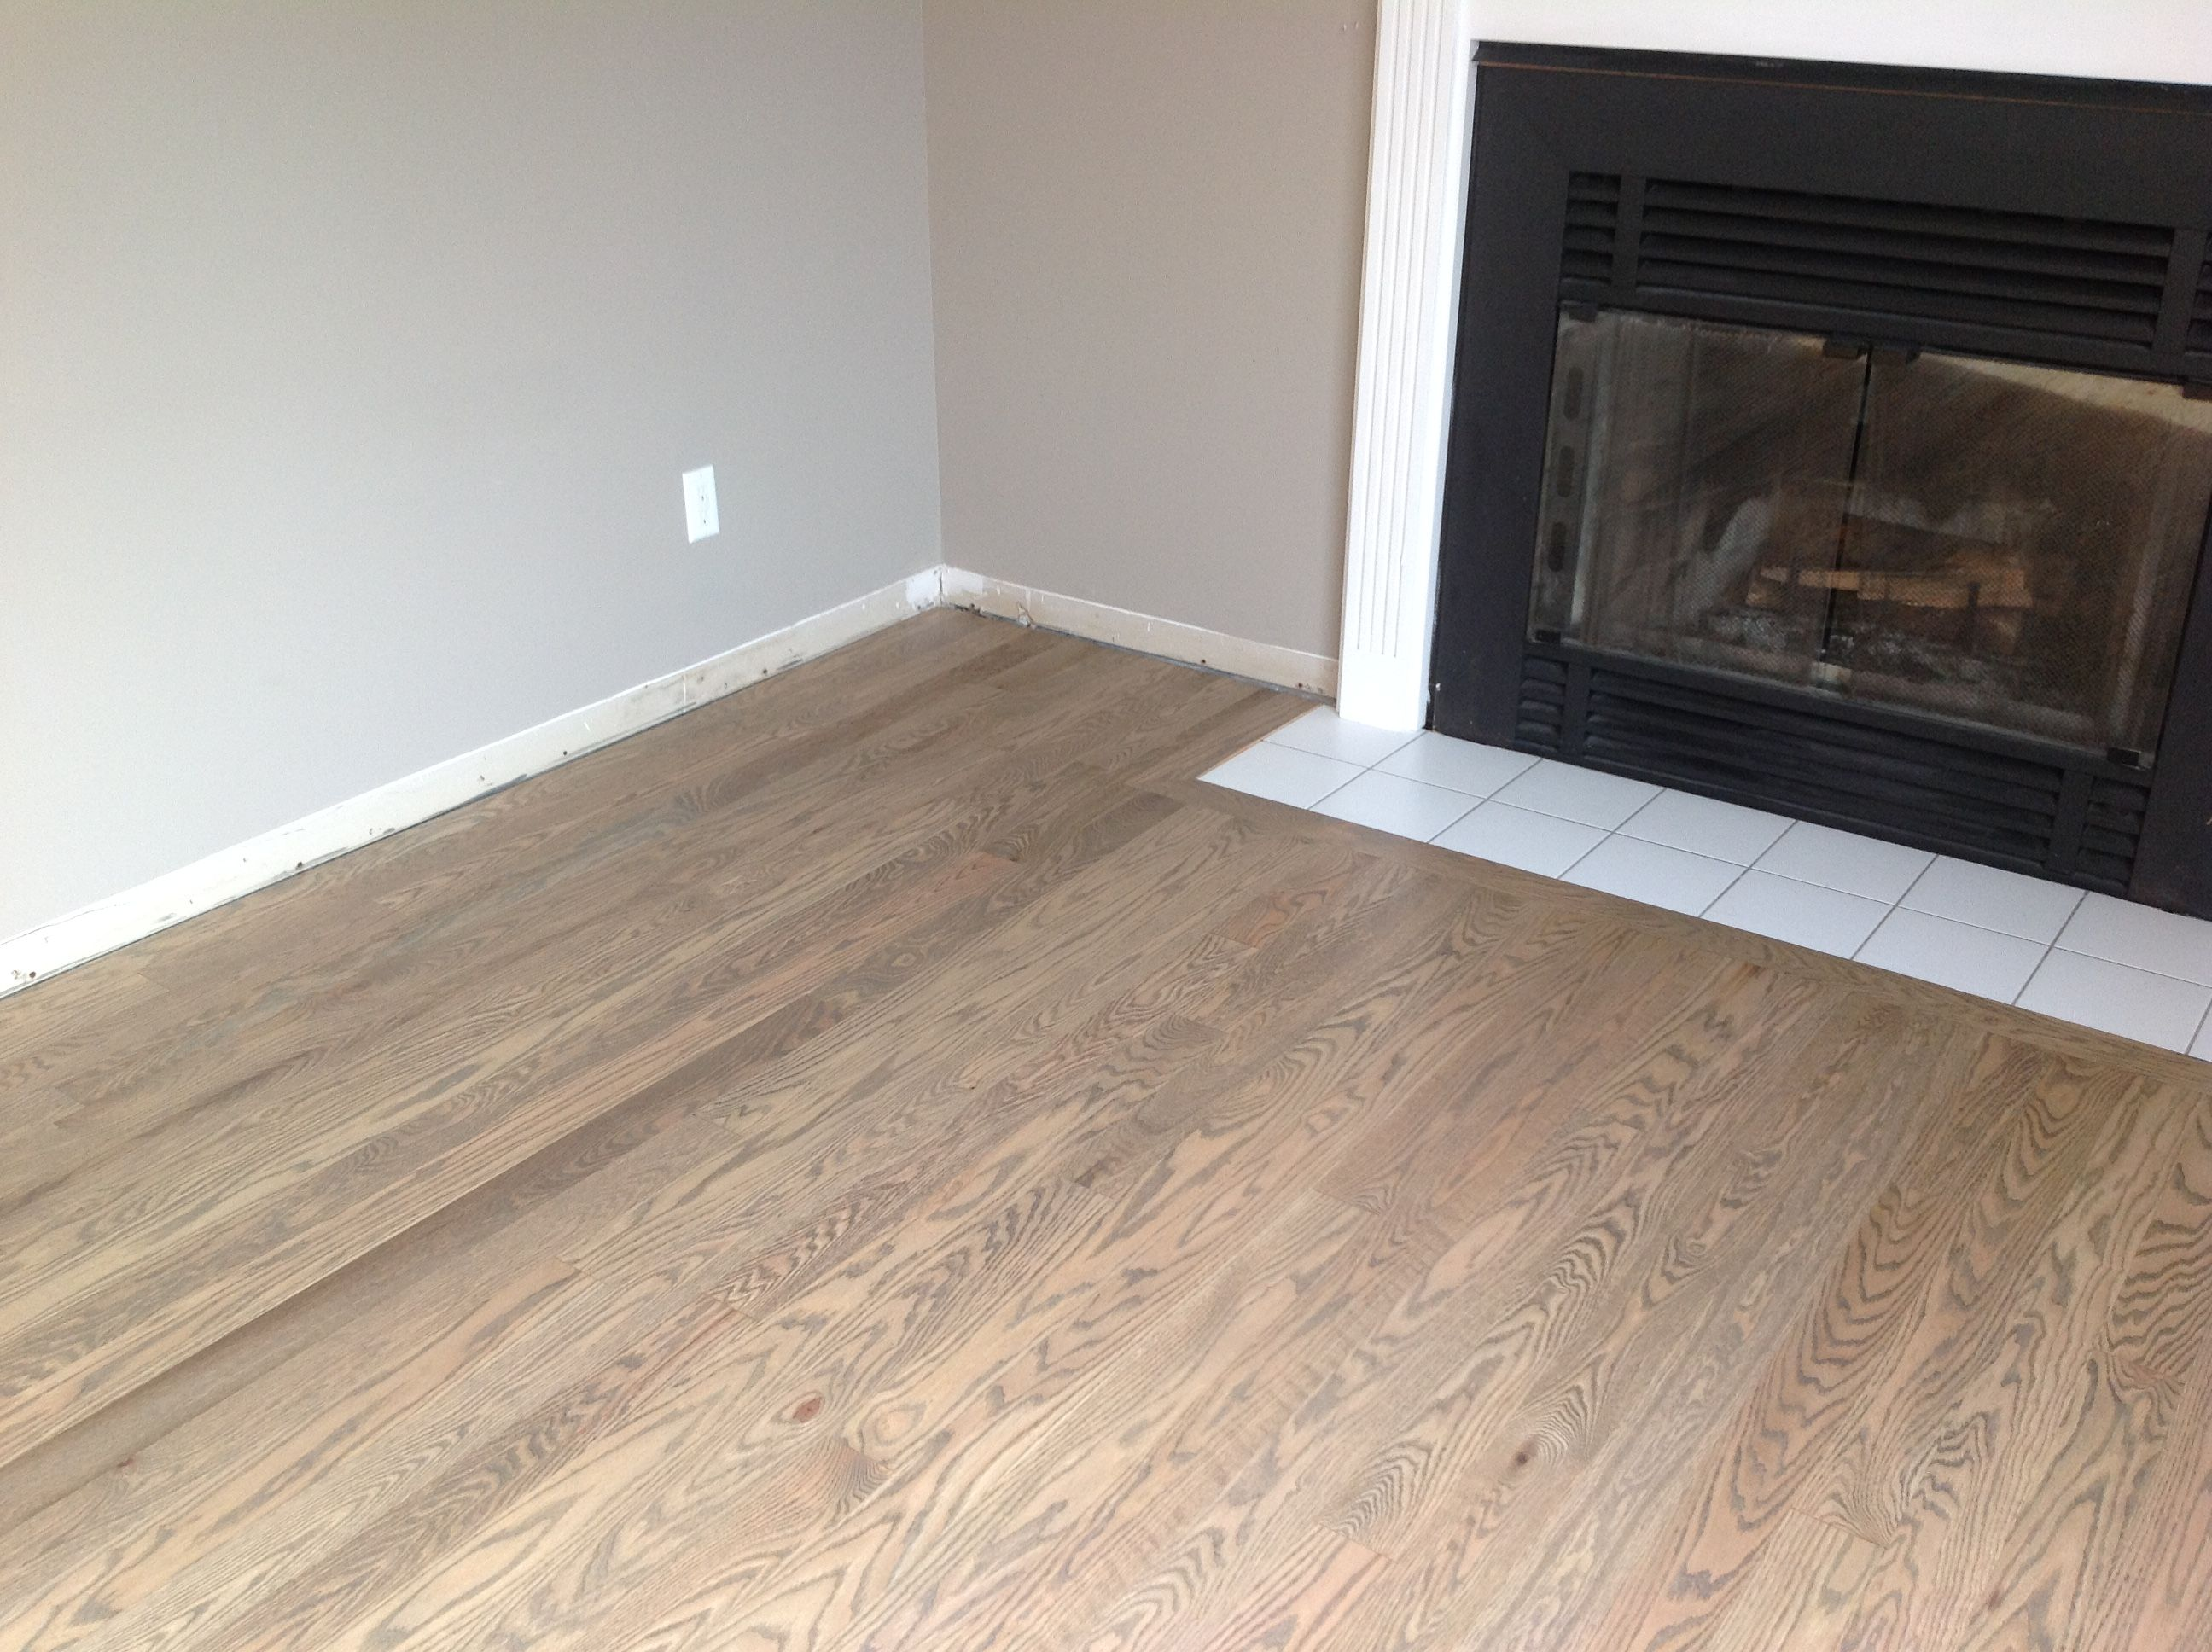 Red Oak Refinished With Half Weathered Oak And Half Grey Appear More Weathered Oak Then Grey When Not Against Grey Stained Wood Oak Floor Stains Red Oak Floors